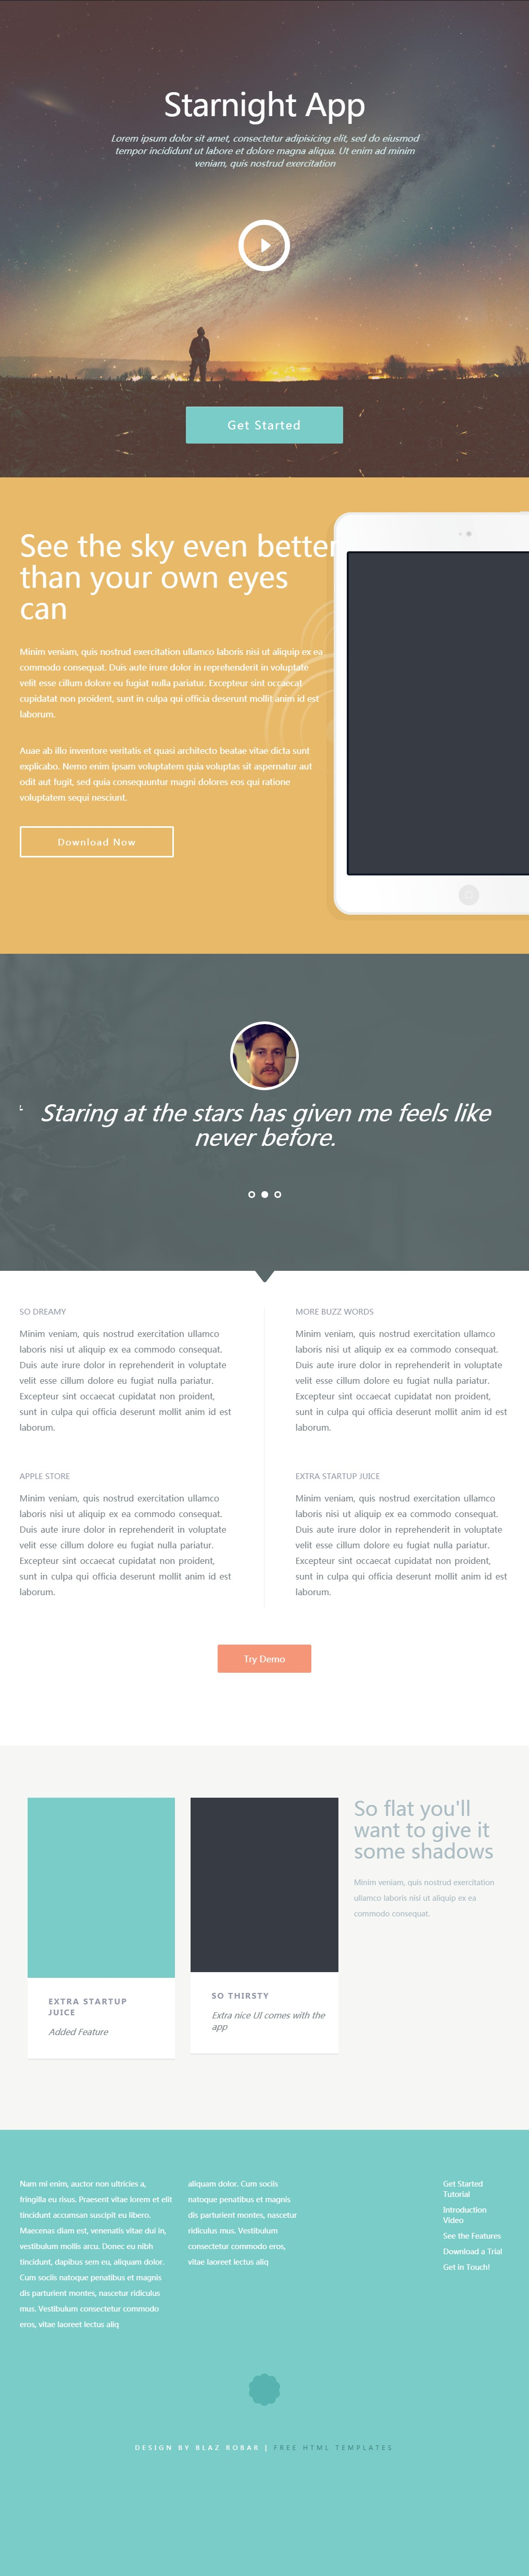 Starnight-A-Sexy-As-Hell-Free-HTML5-CSS3-Template